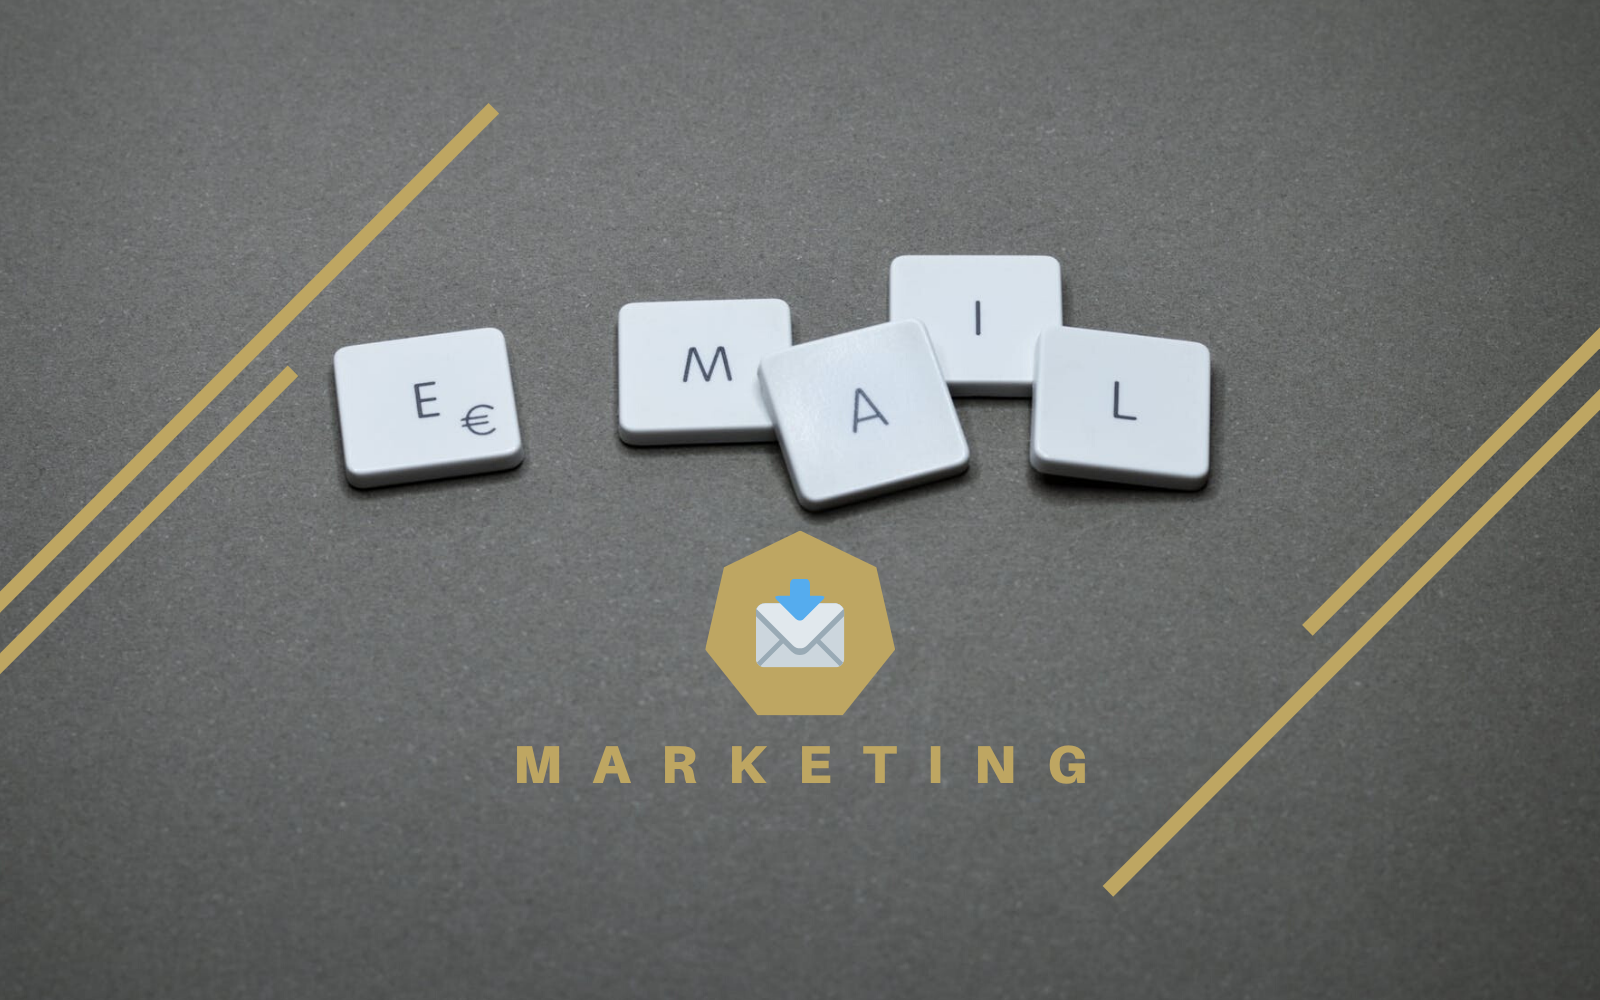 9 Effective Email Marketing Tips That'll Help You Generate More Leads and Revenue